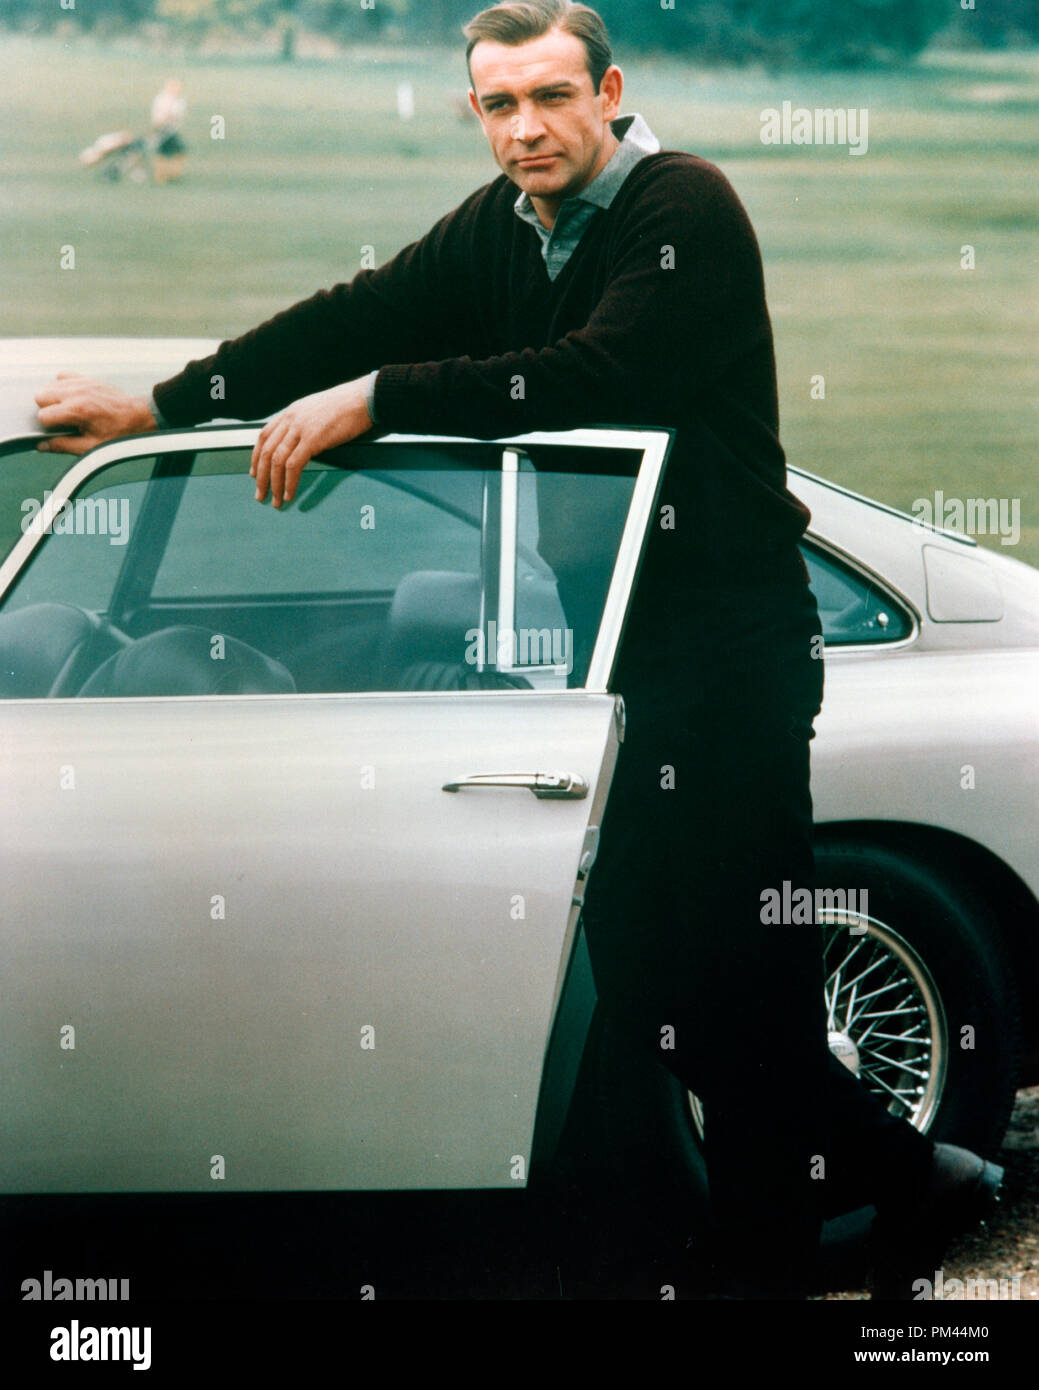 Sean Connery With The Aston Martin Db5 In Character For Goldfinger 1964 Ua File Reference 1025 015tha Stock Photo Alamy